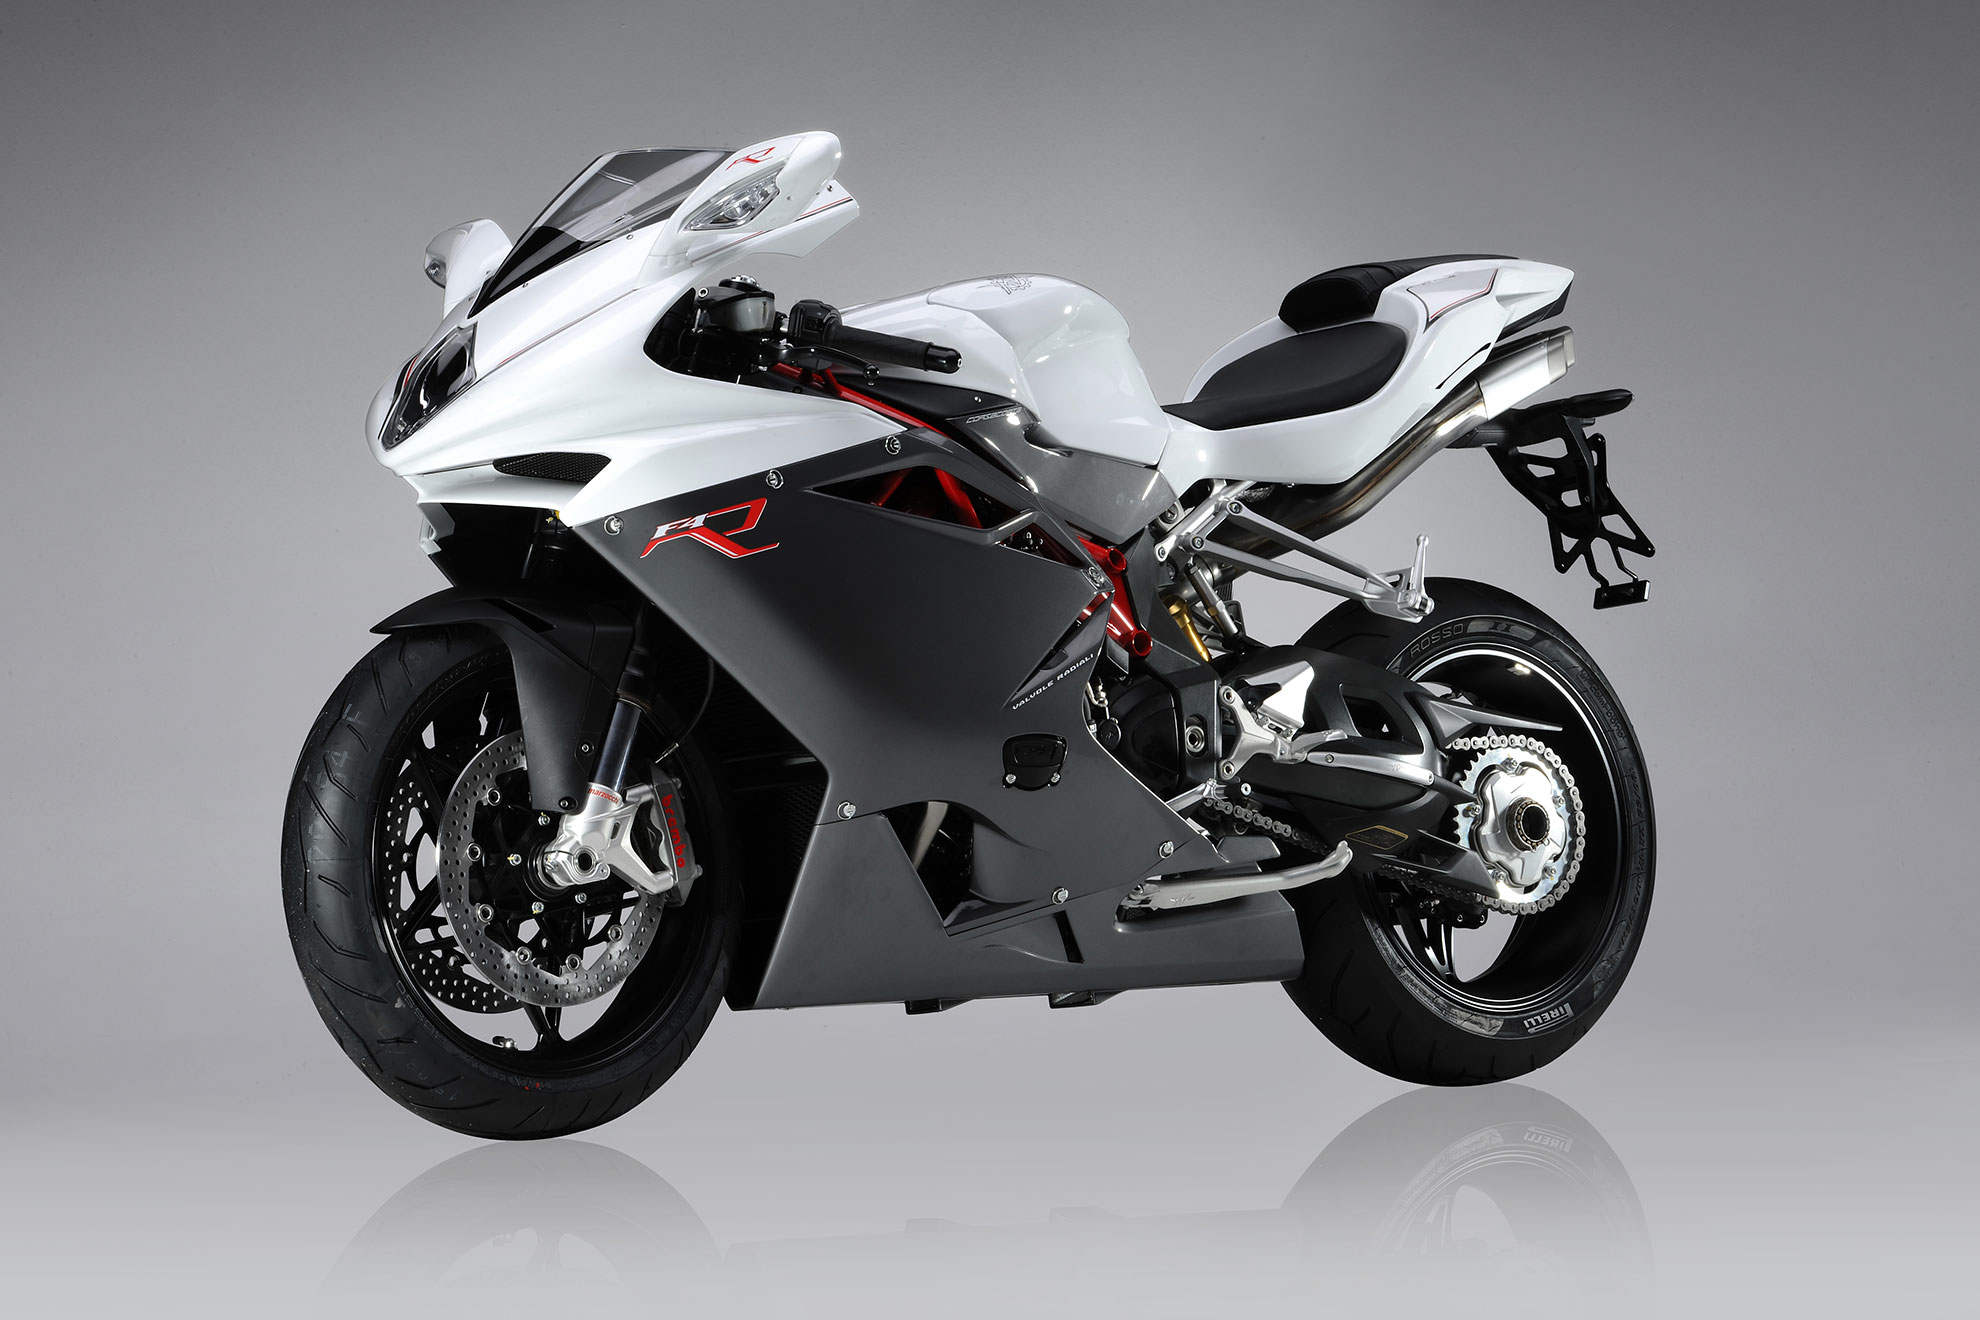 Image result for MV Agusta F4 1000R